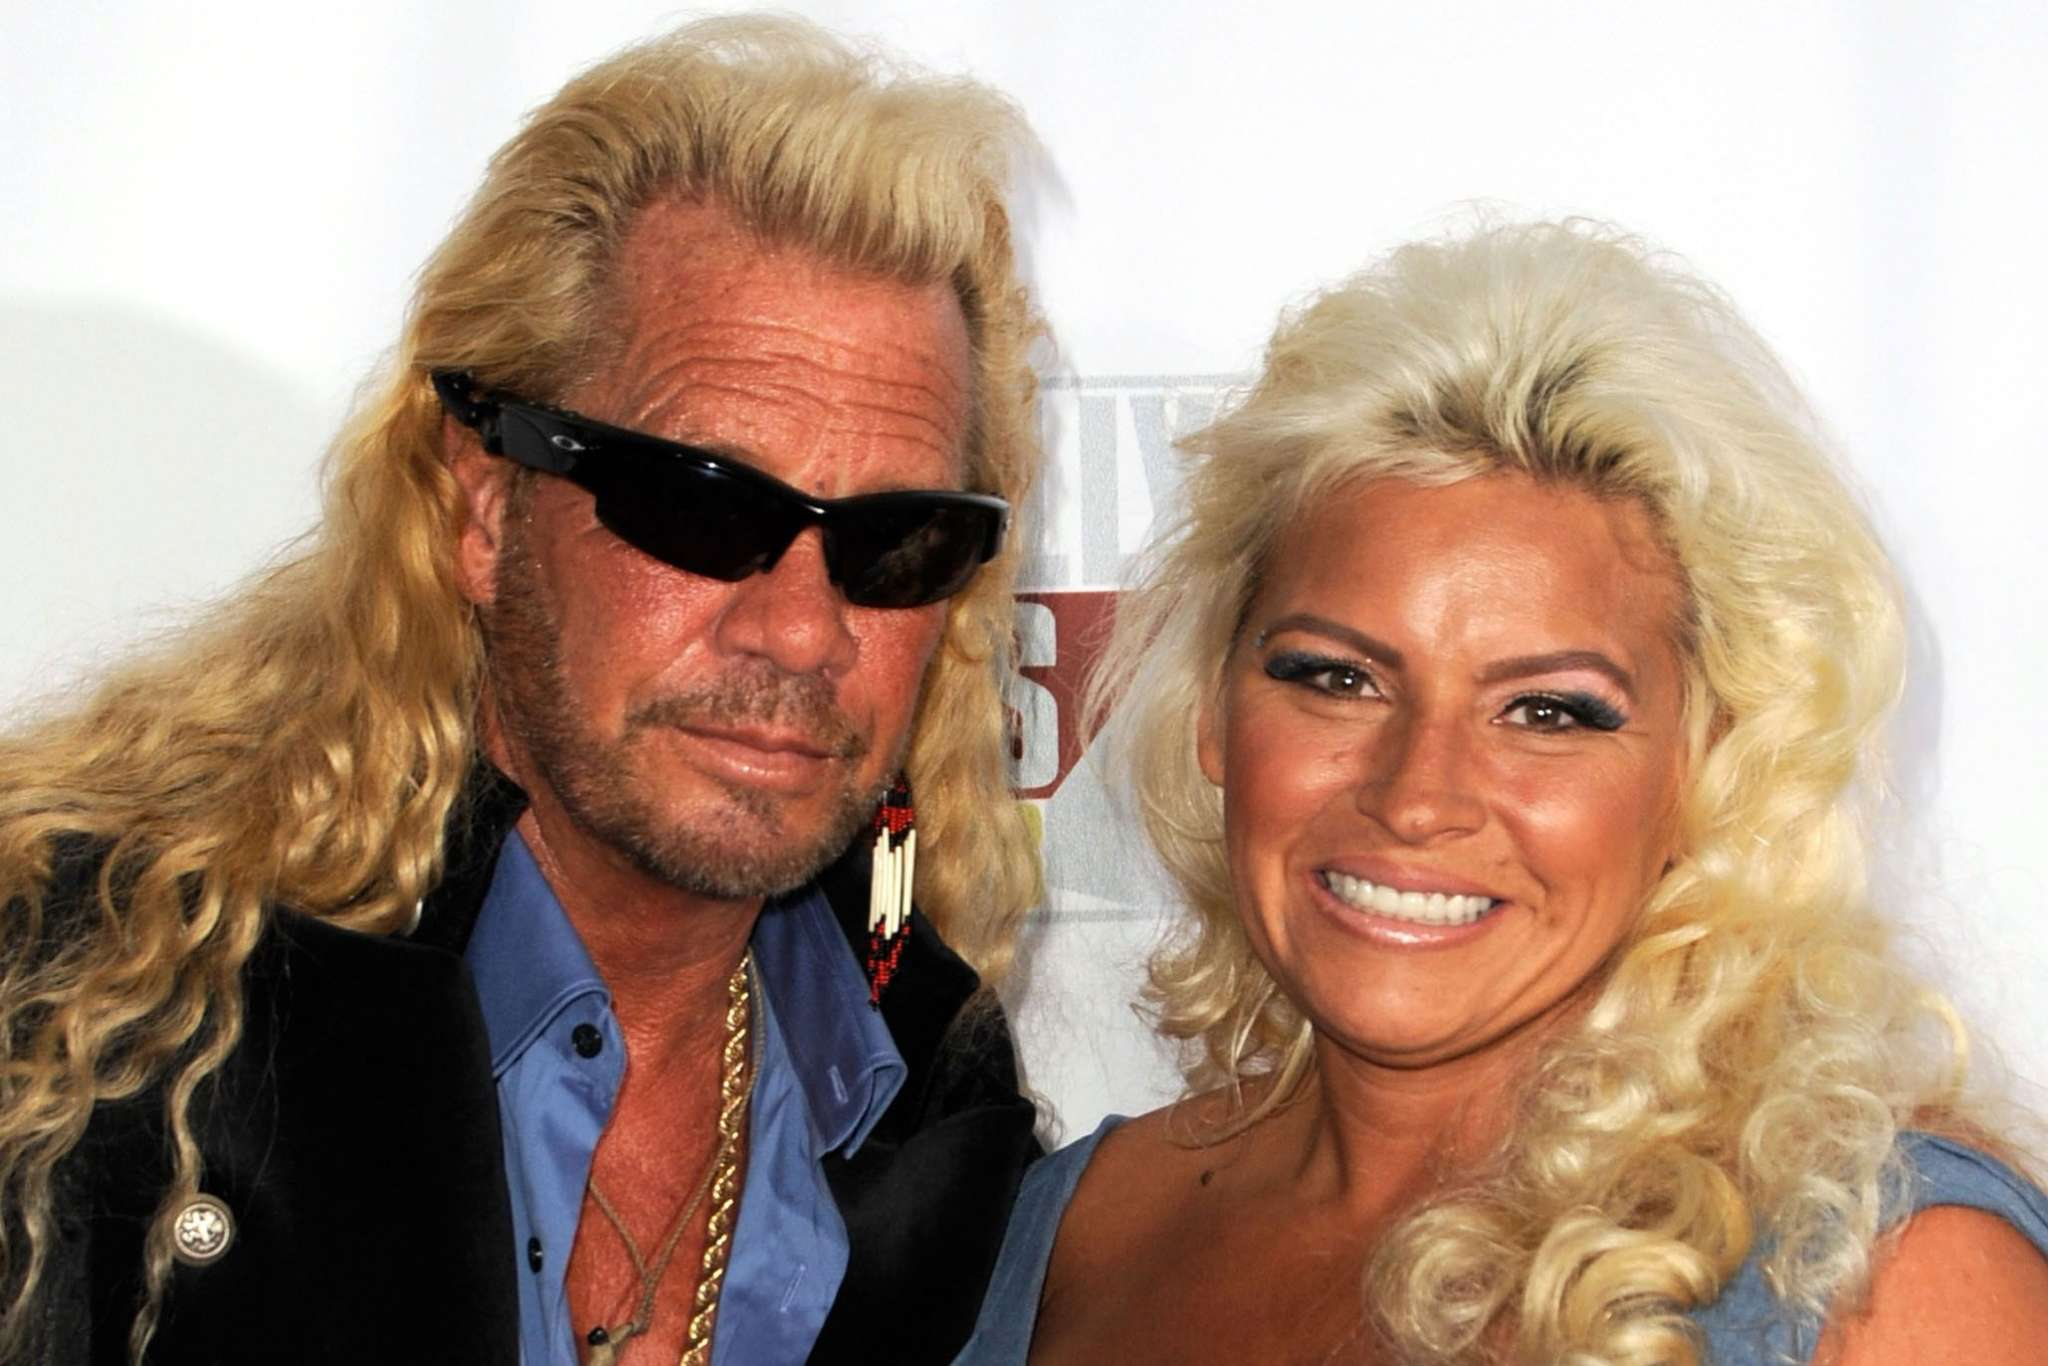 Dog the Bounty Hunter and Moon Angell quash engagement rumors""